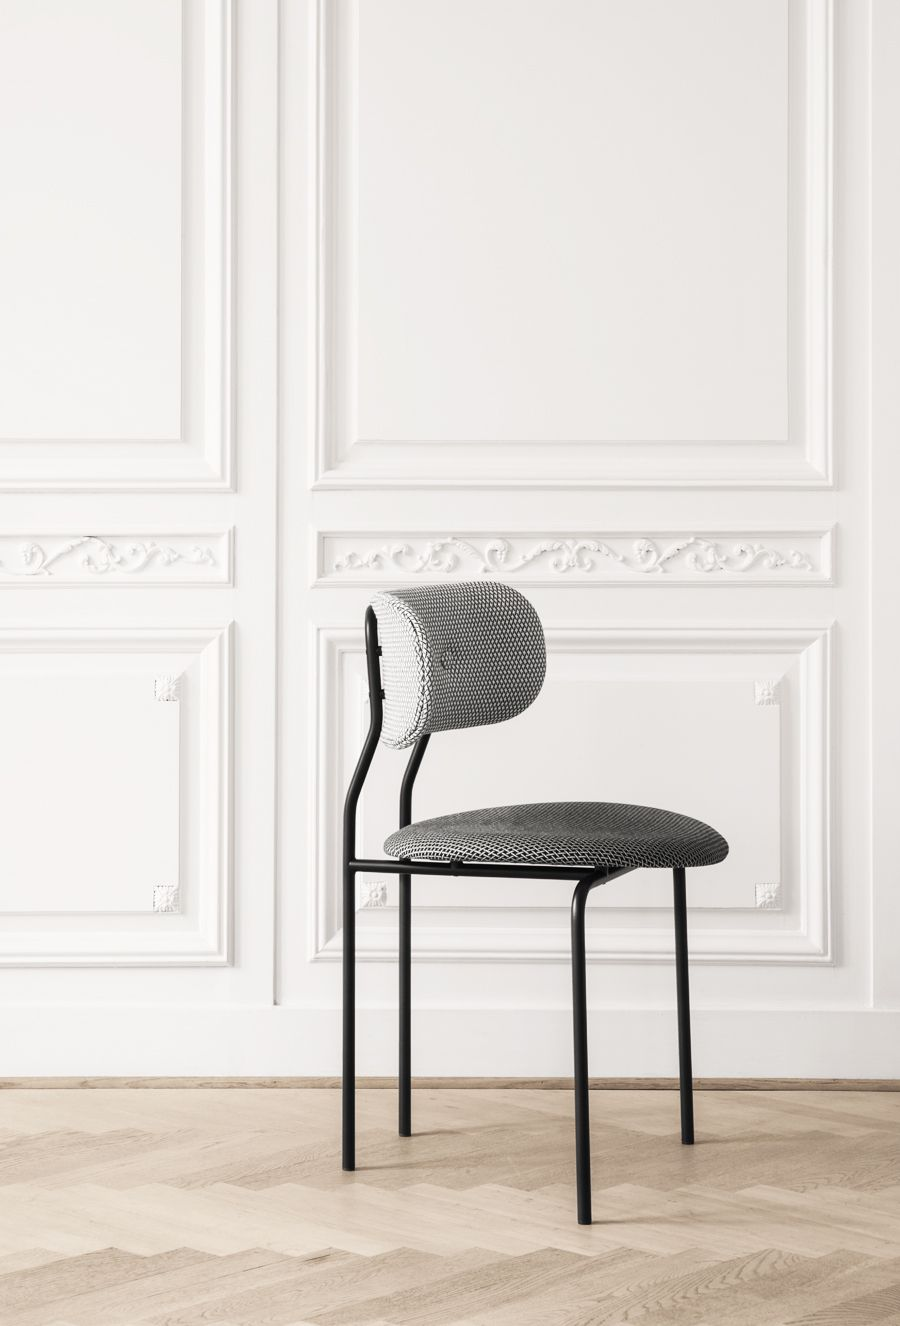 Coco Chair Upholstered | DSHOP